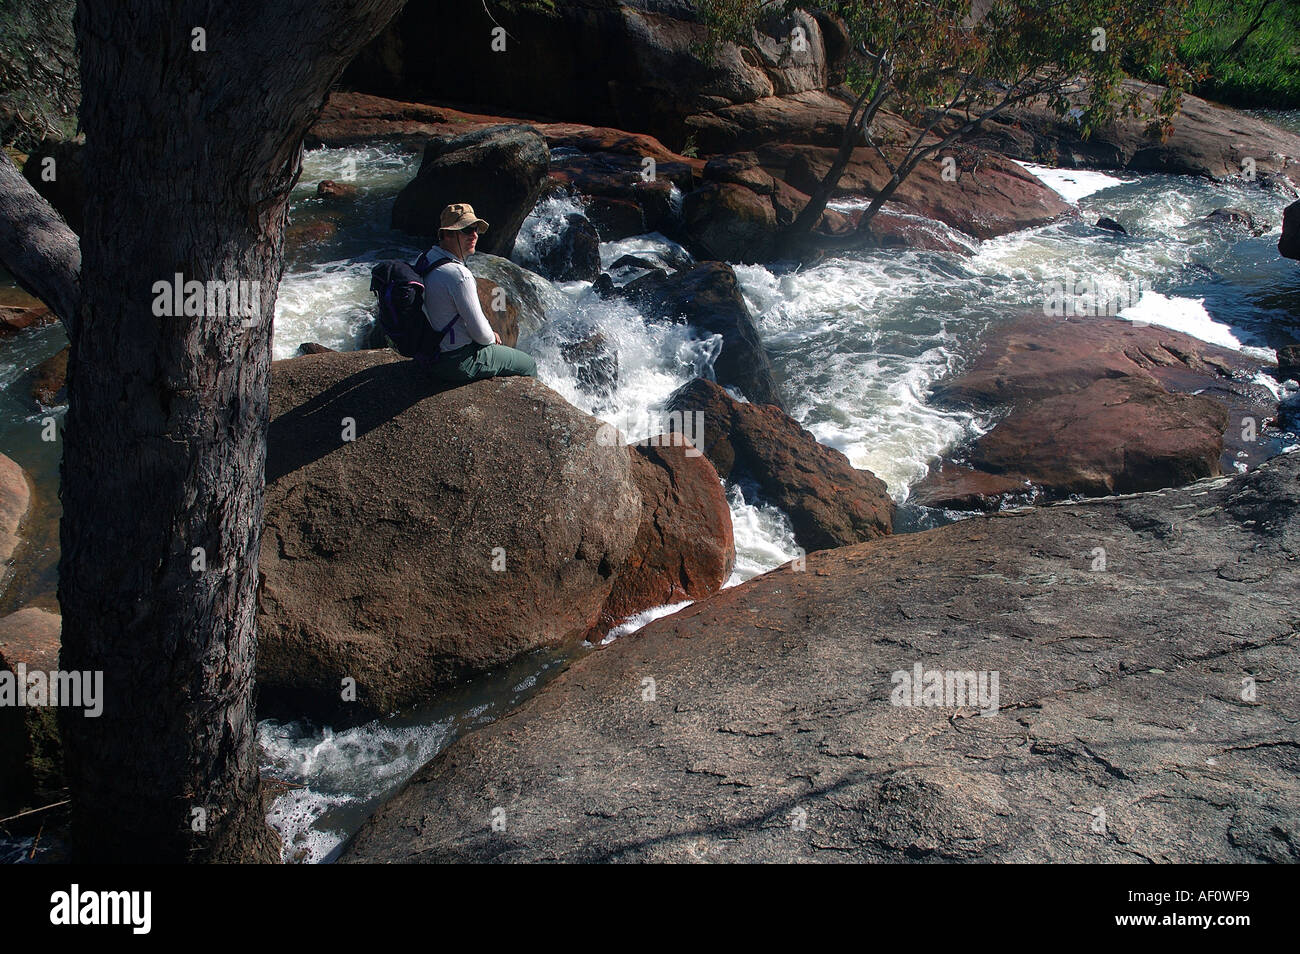 Bushwalker resting on a boulder in Jane Brook John Forrest National Park, Darling Ranges, Western Australia MR - Stock Image